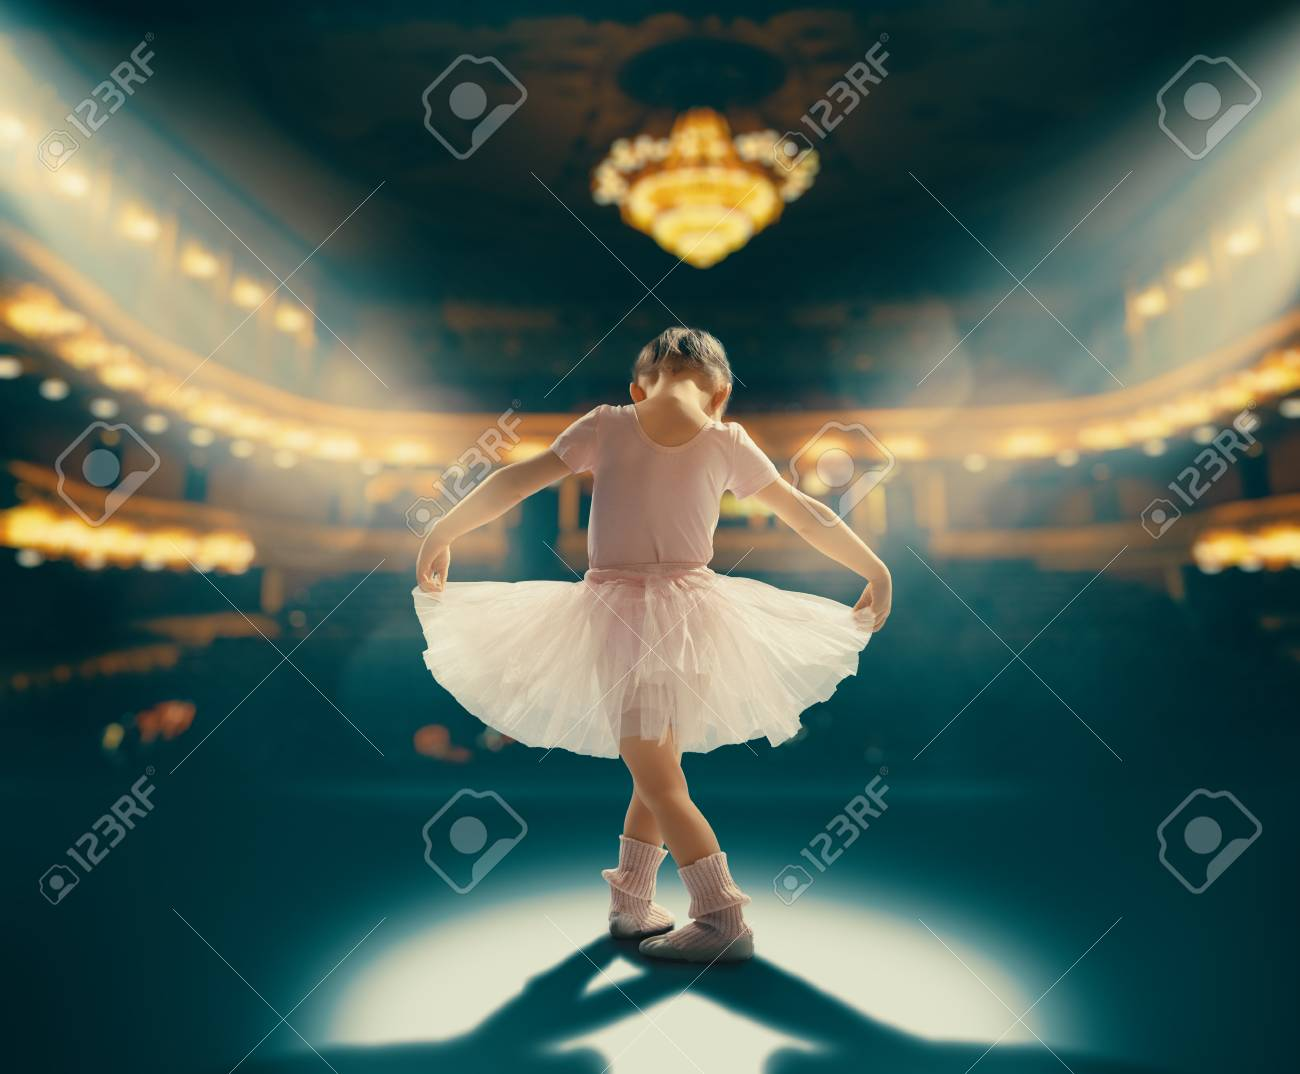 Cute little girl dreaming of becoming a ballerina. Child girl in a pink tutu dancing on the stage. Baby girl is studying ballet. - 117287641